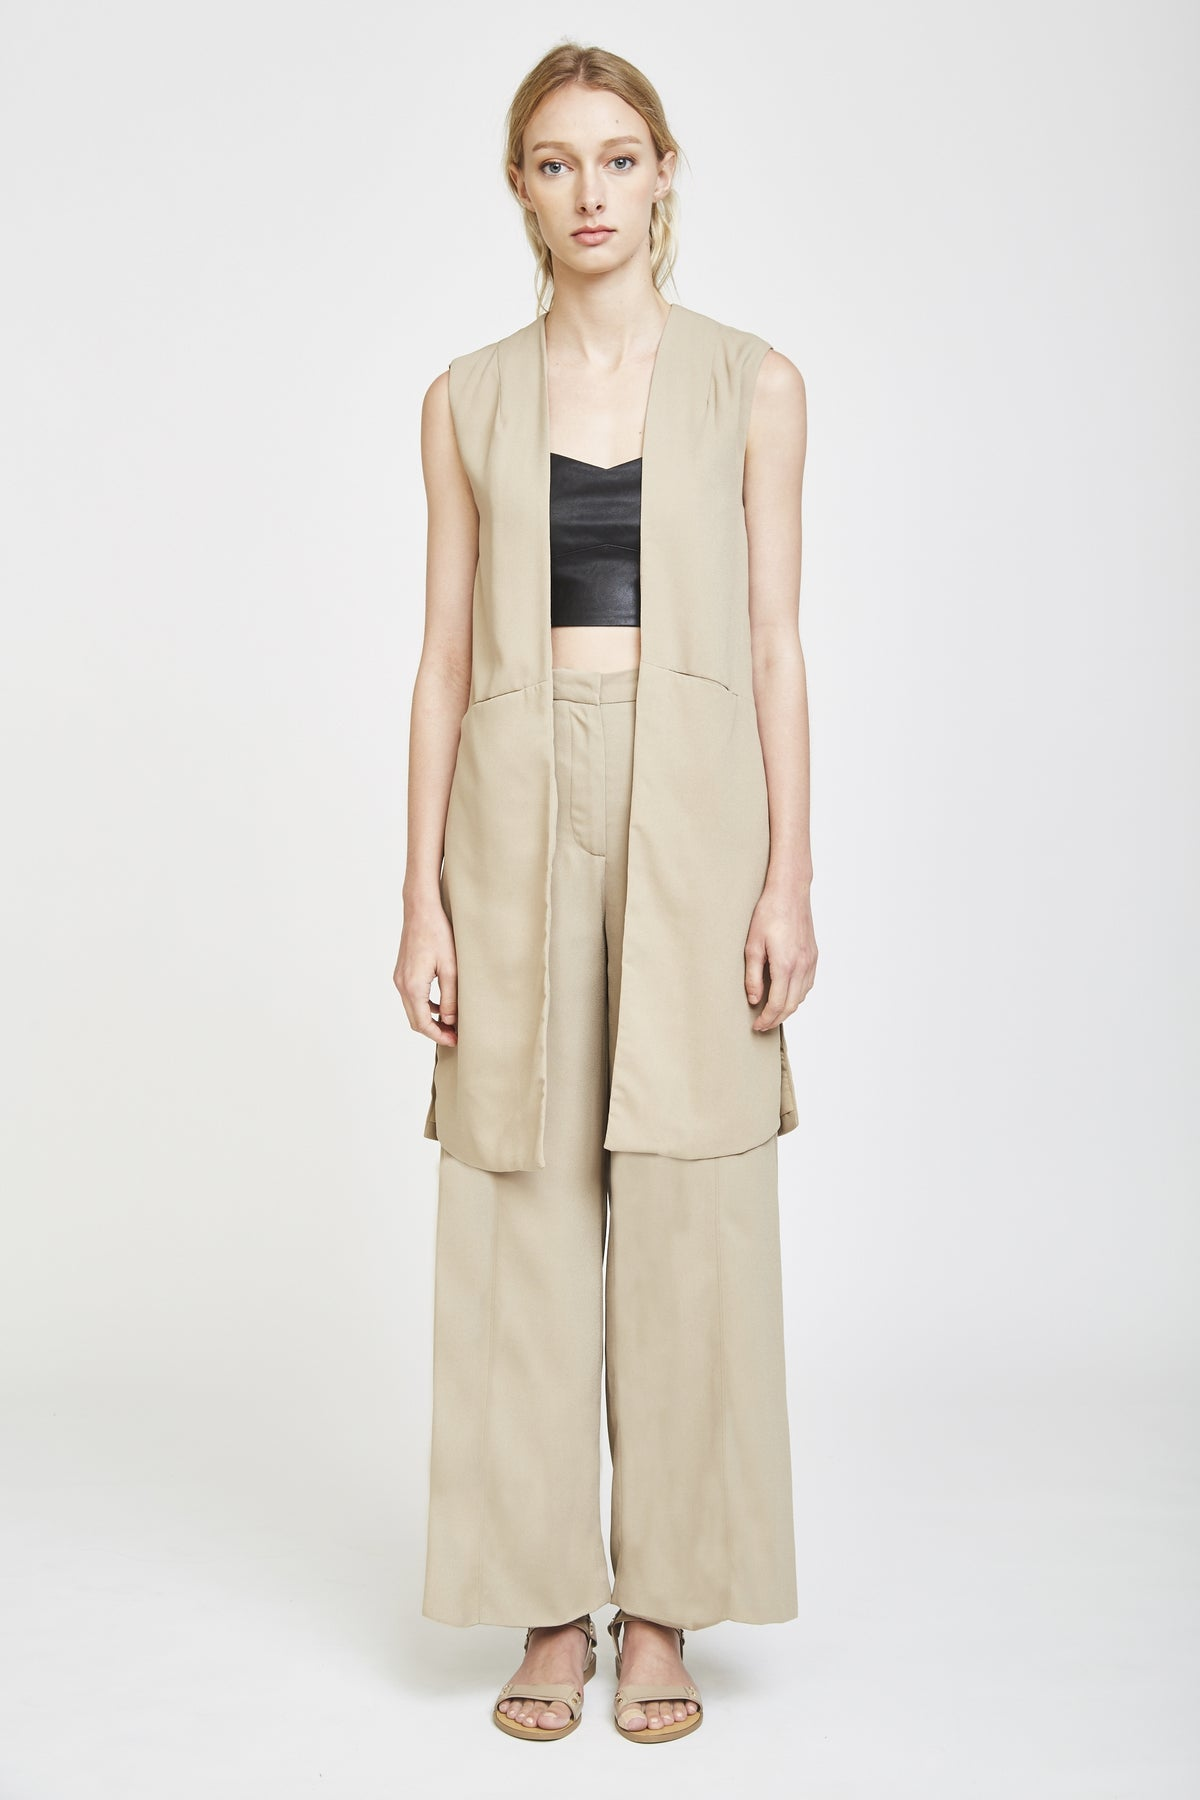 Tailored Vest In Hay